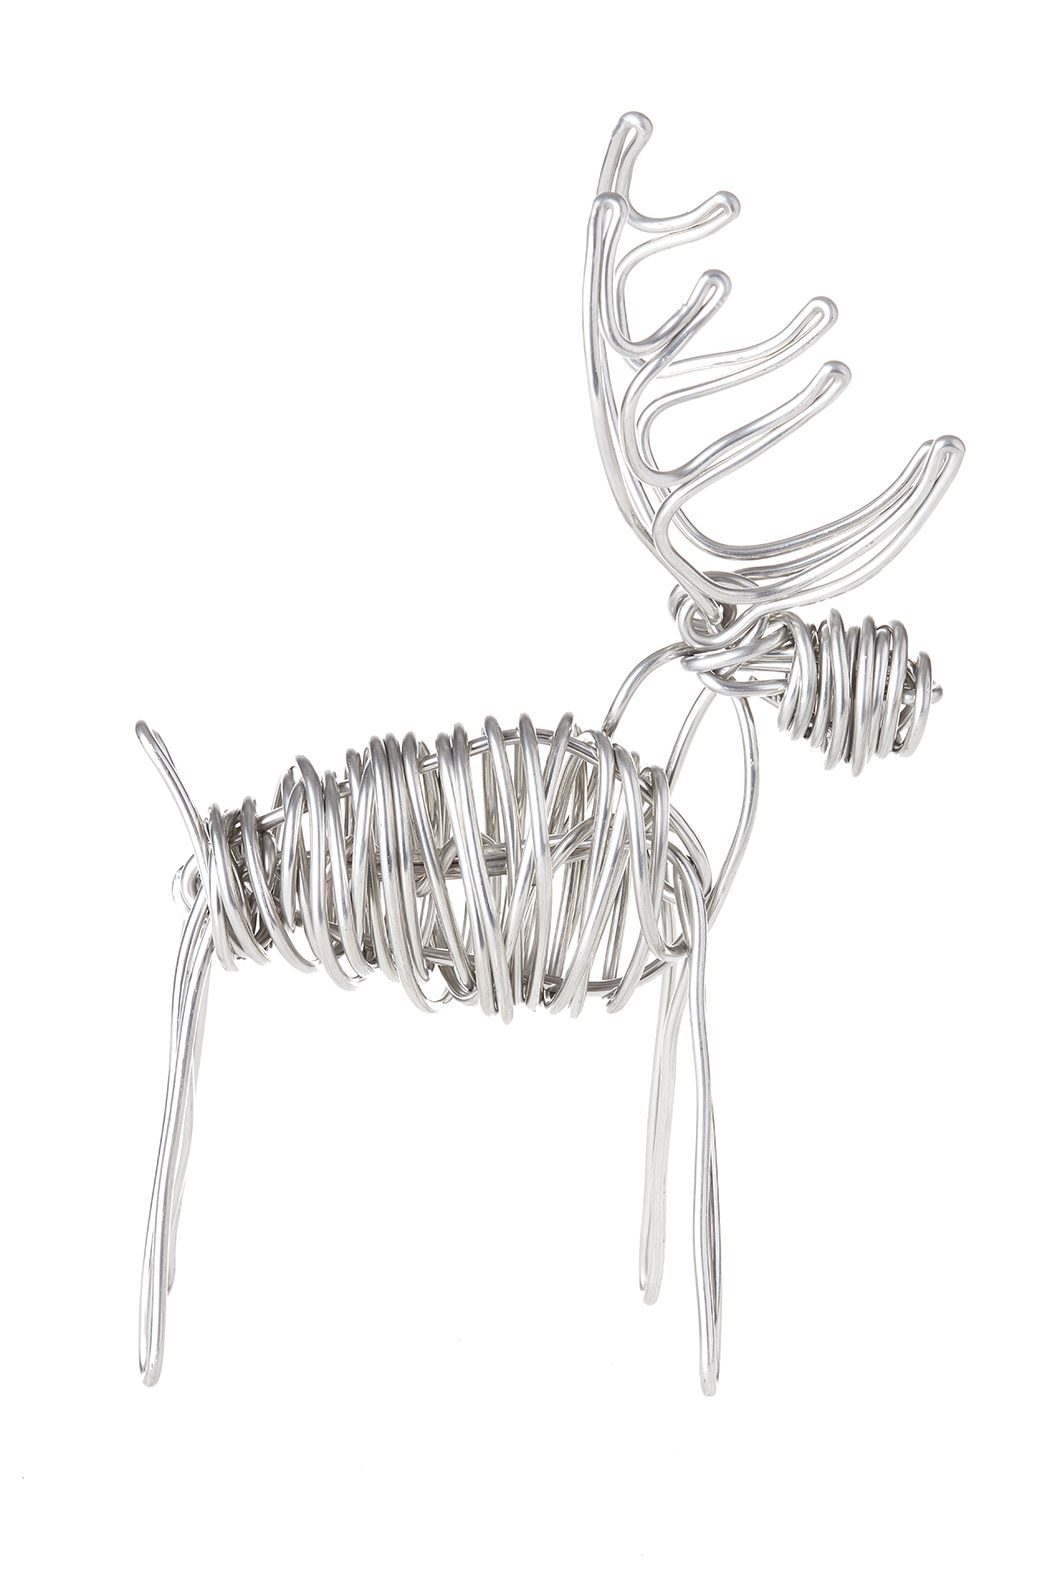 Drawn Metal Studios Deer Sculpture - Main Image